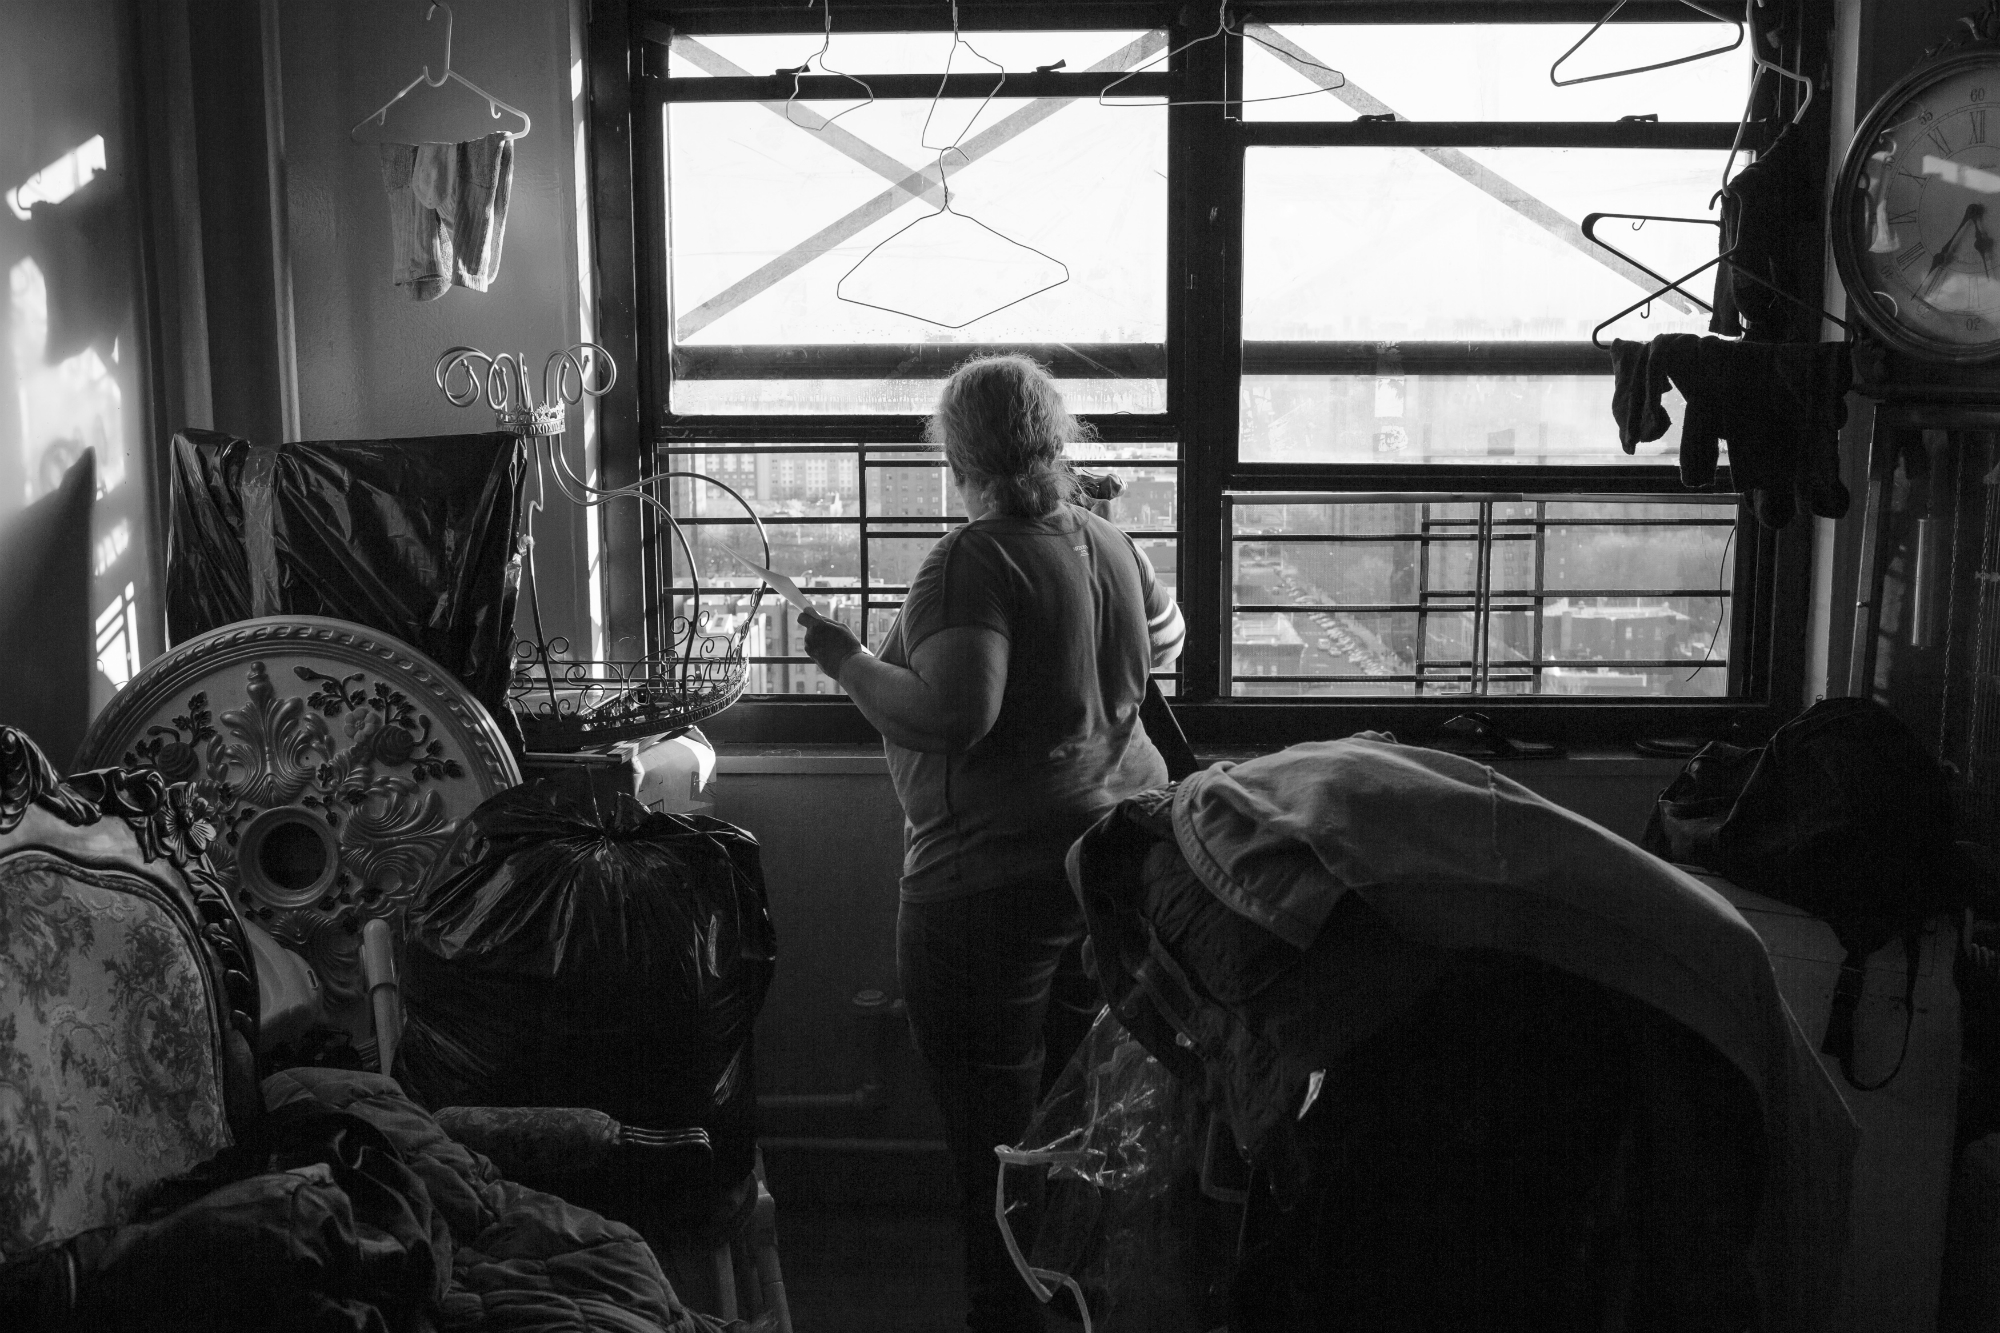 Juan Neira's mother inside the living room of their apartment, April 13, 2016, Mott Haven, South Bronx. (Photo by Sarah Blesener/GroundTruth/Alexia Foundation)